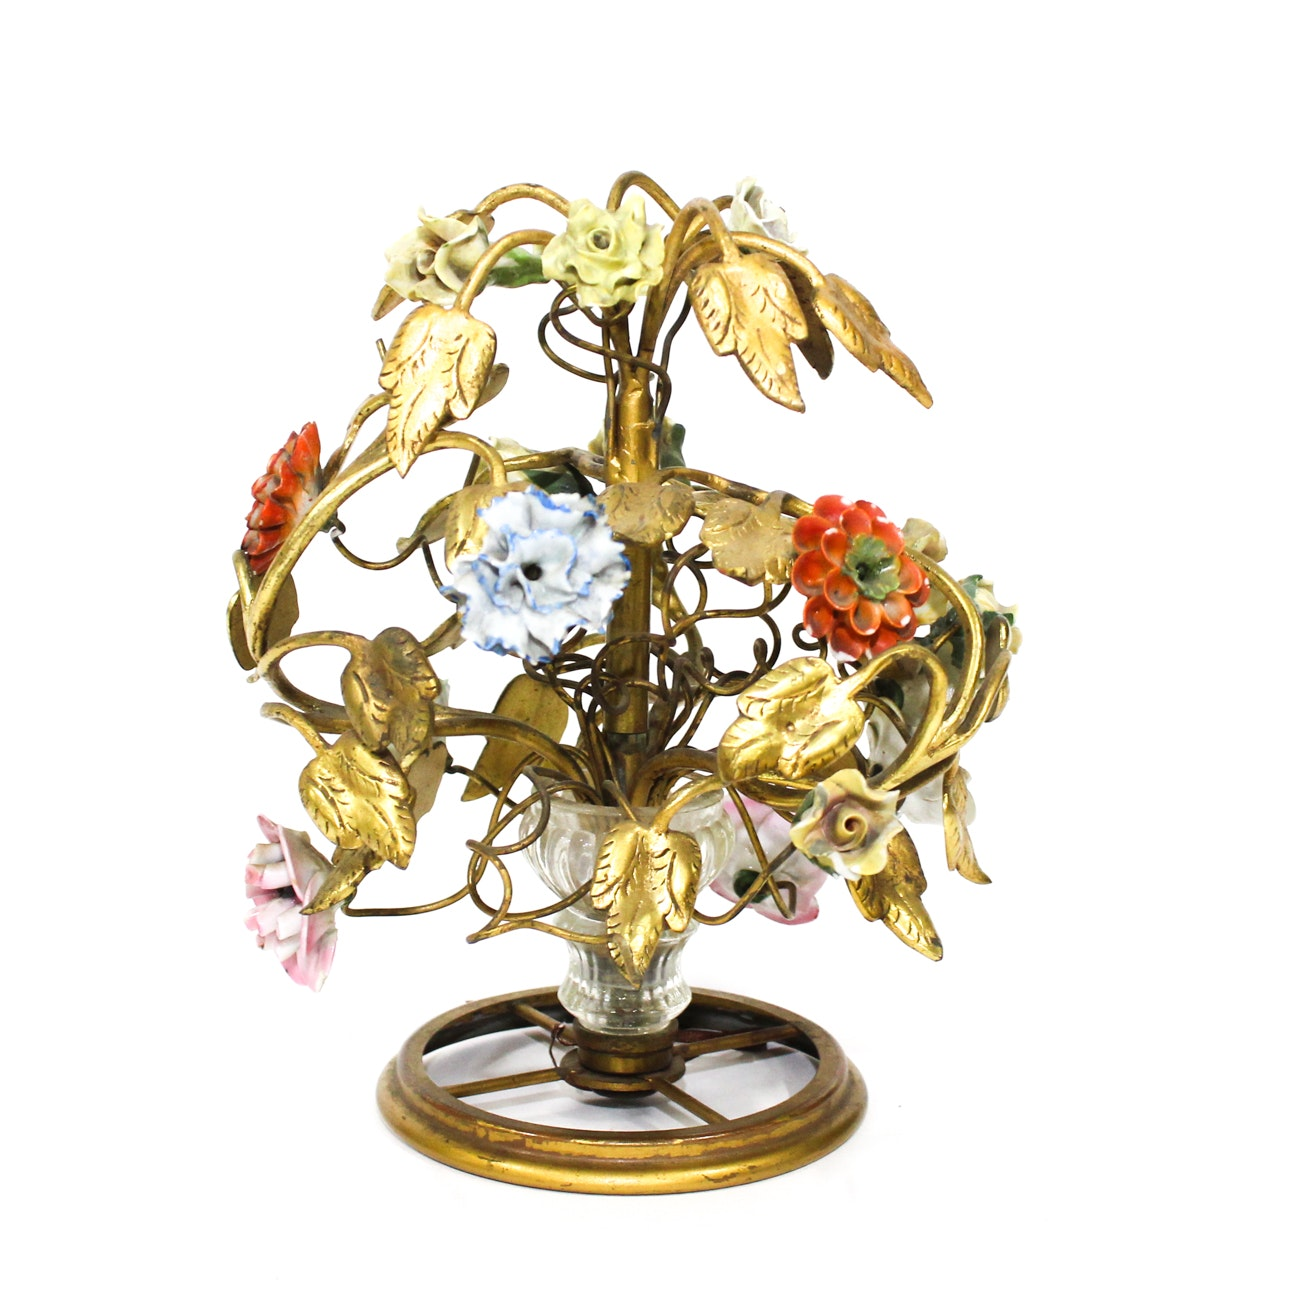 French Gilt-Metal Mounted Porcelain and Glass Floral Centerpiece, 20th Century